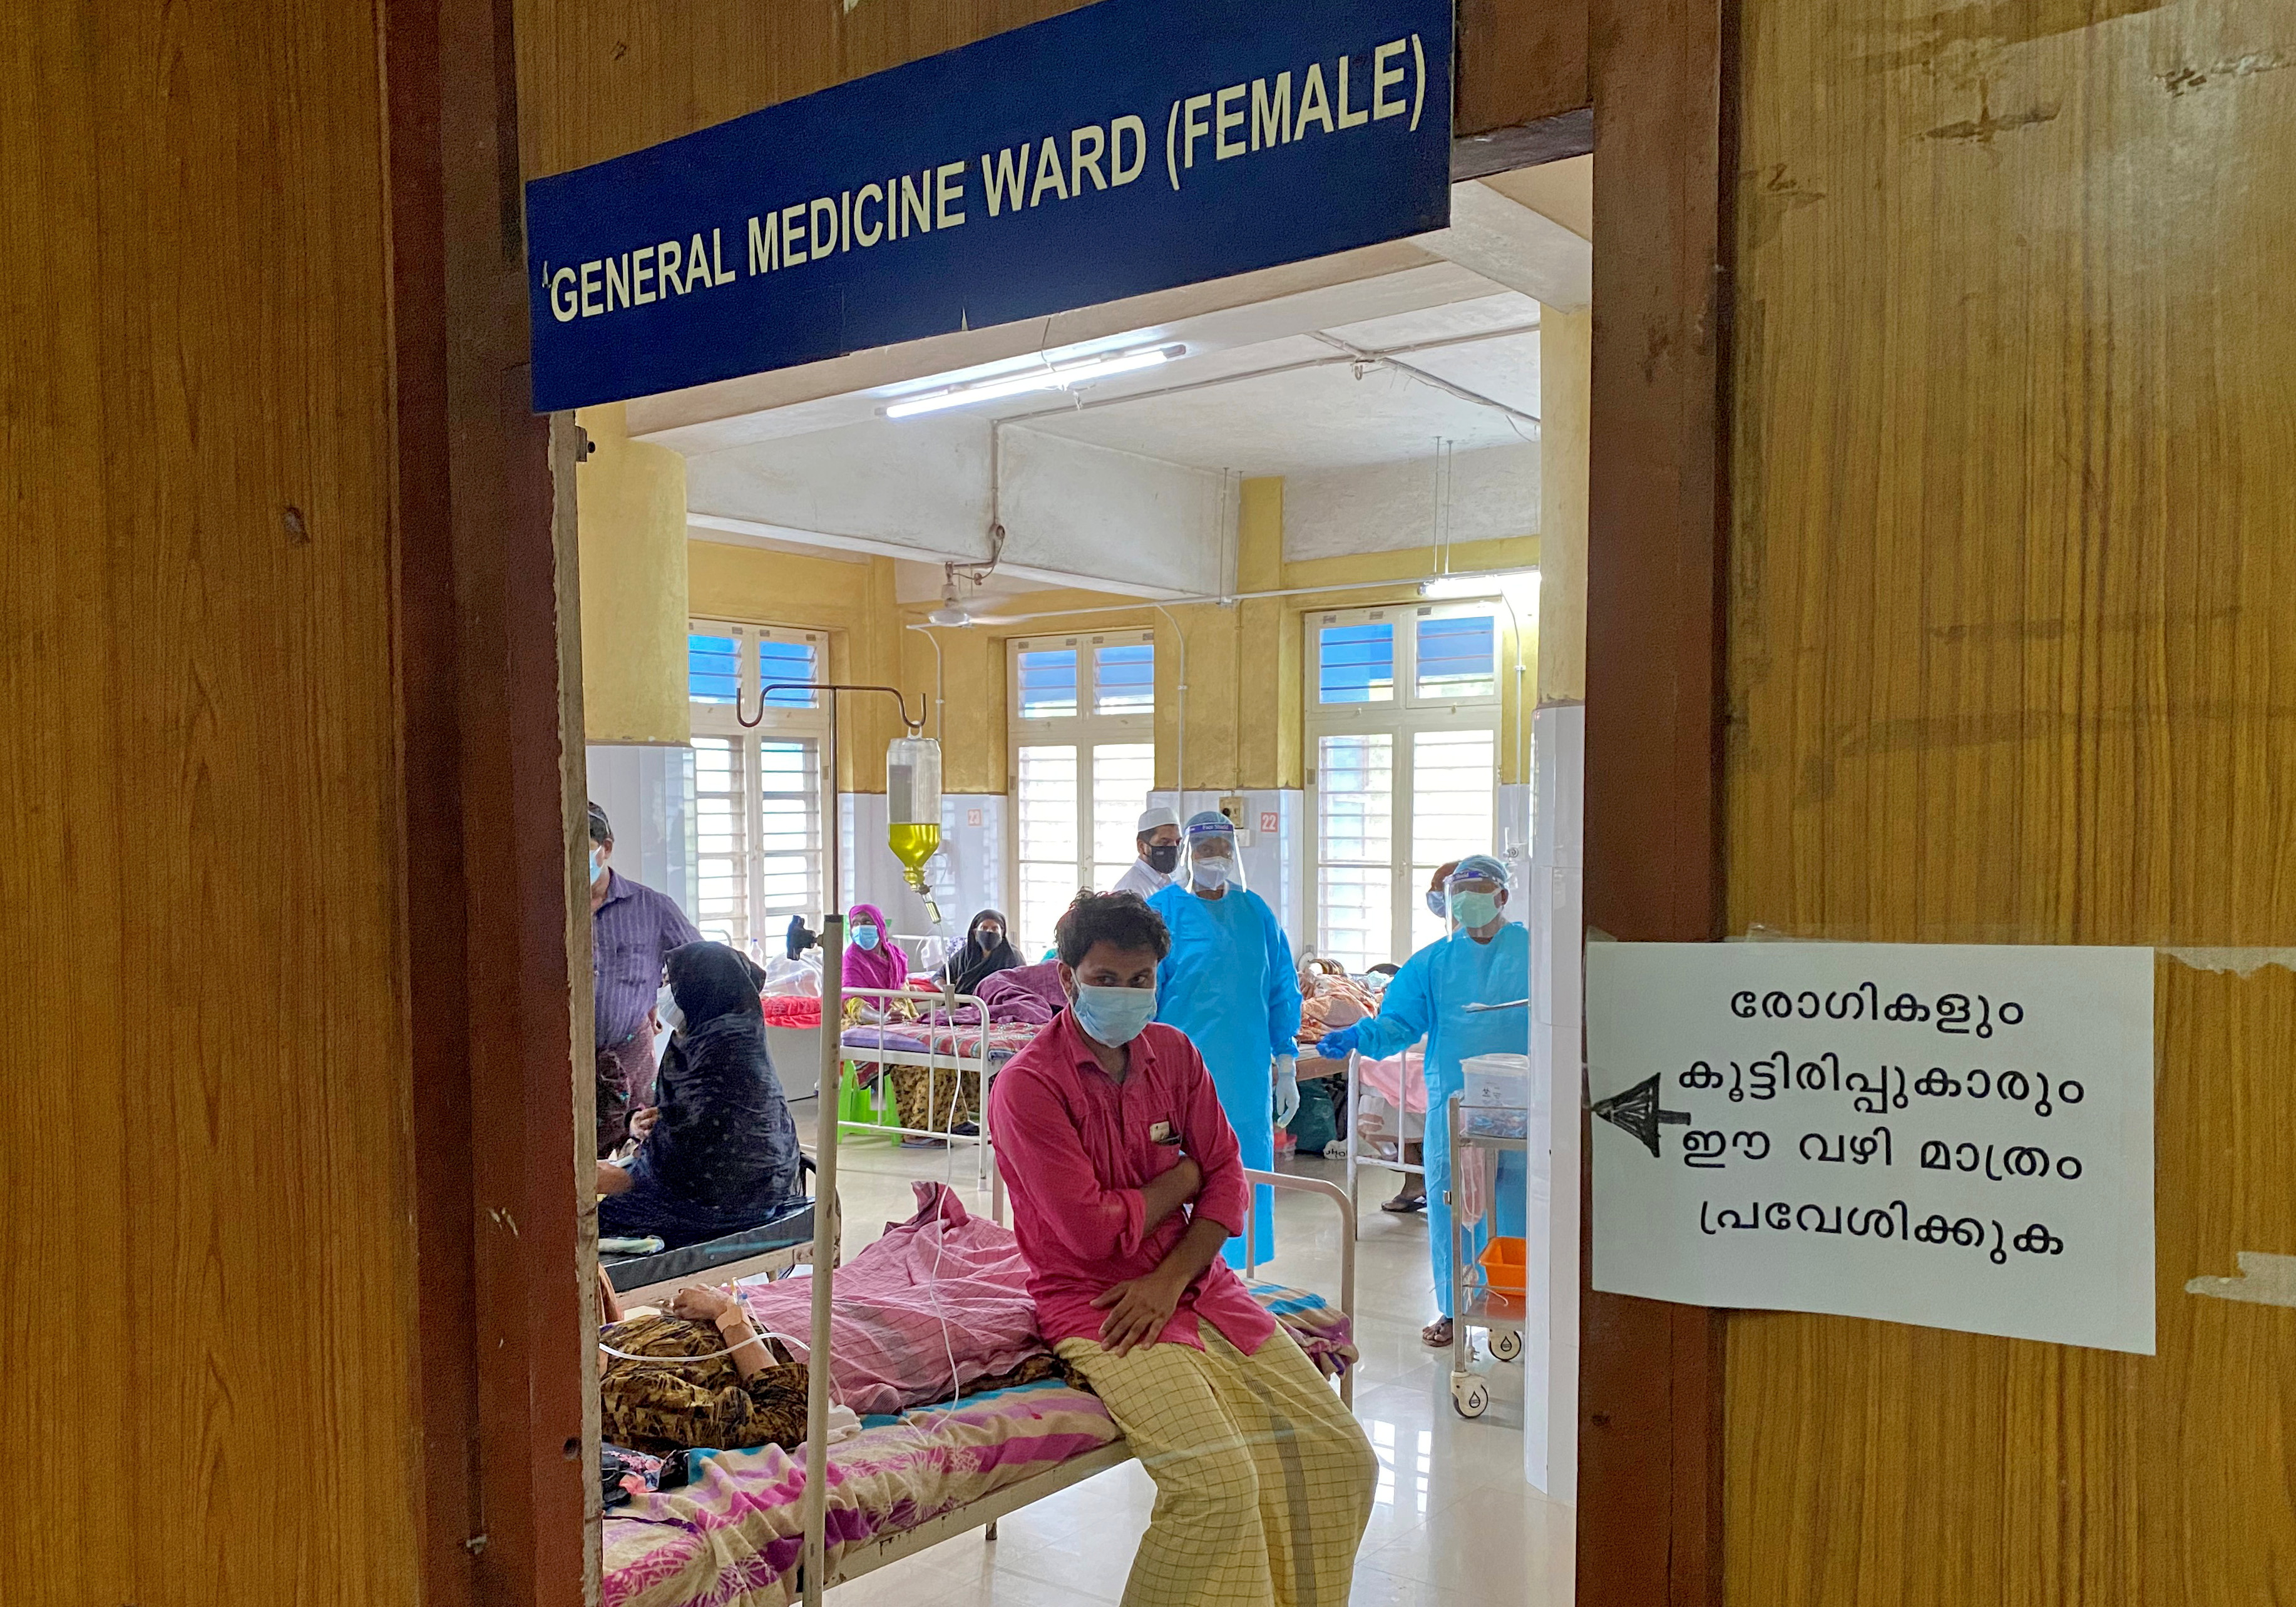 A man looks out from a coronavirus disease (COVID-19) ward in the Government Medical College Hospital in Manjeri, in the Malappuram district of the southern state of Kerala, India. August 18, 2021. Picture taken August 18, 2021. REUTERS/Krishna N. Das